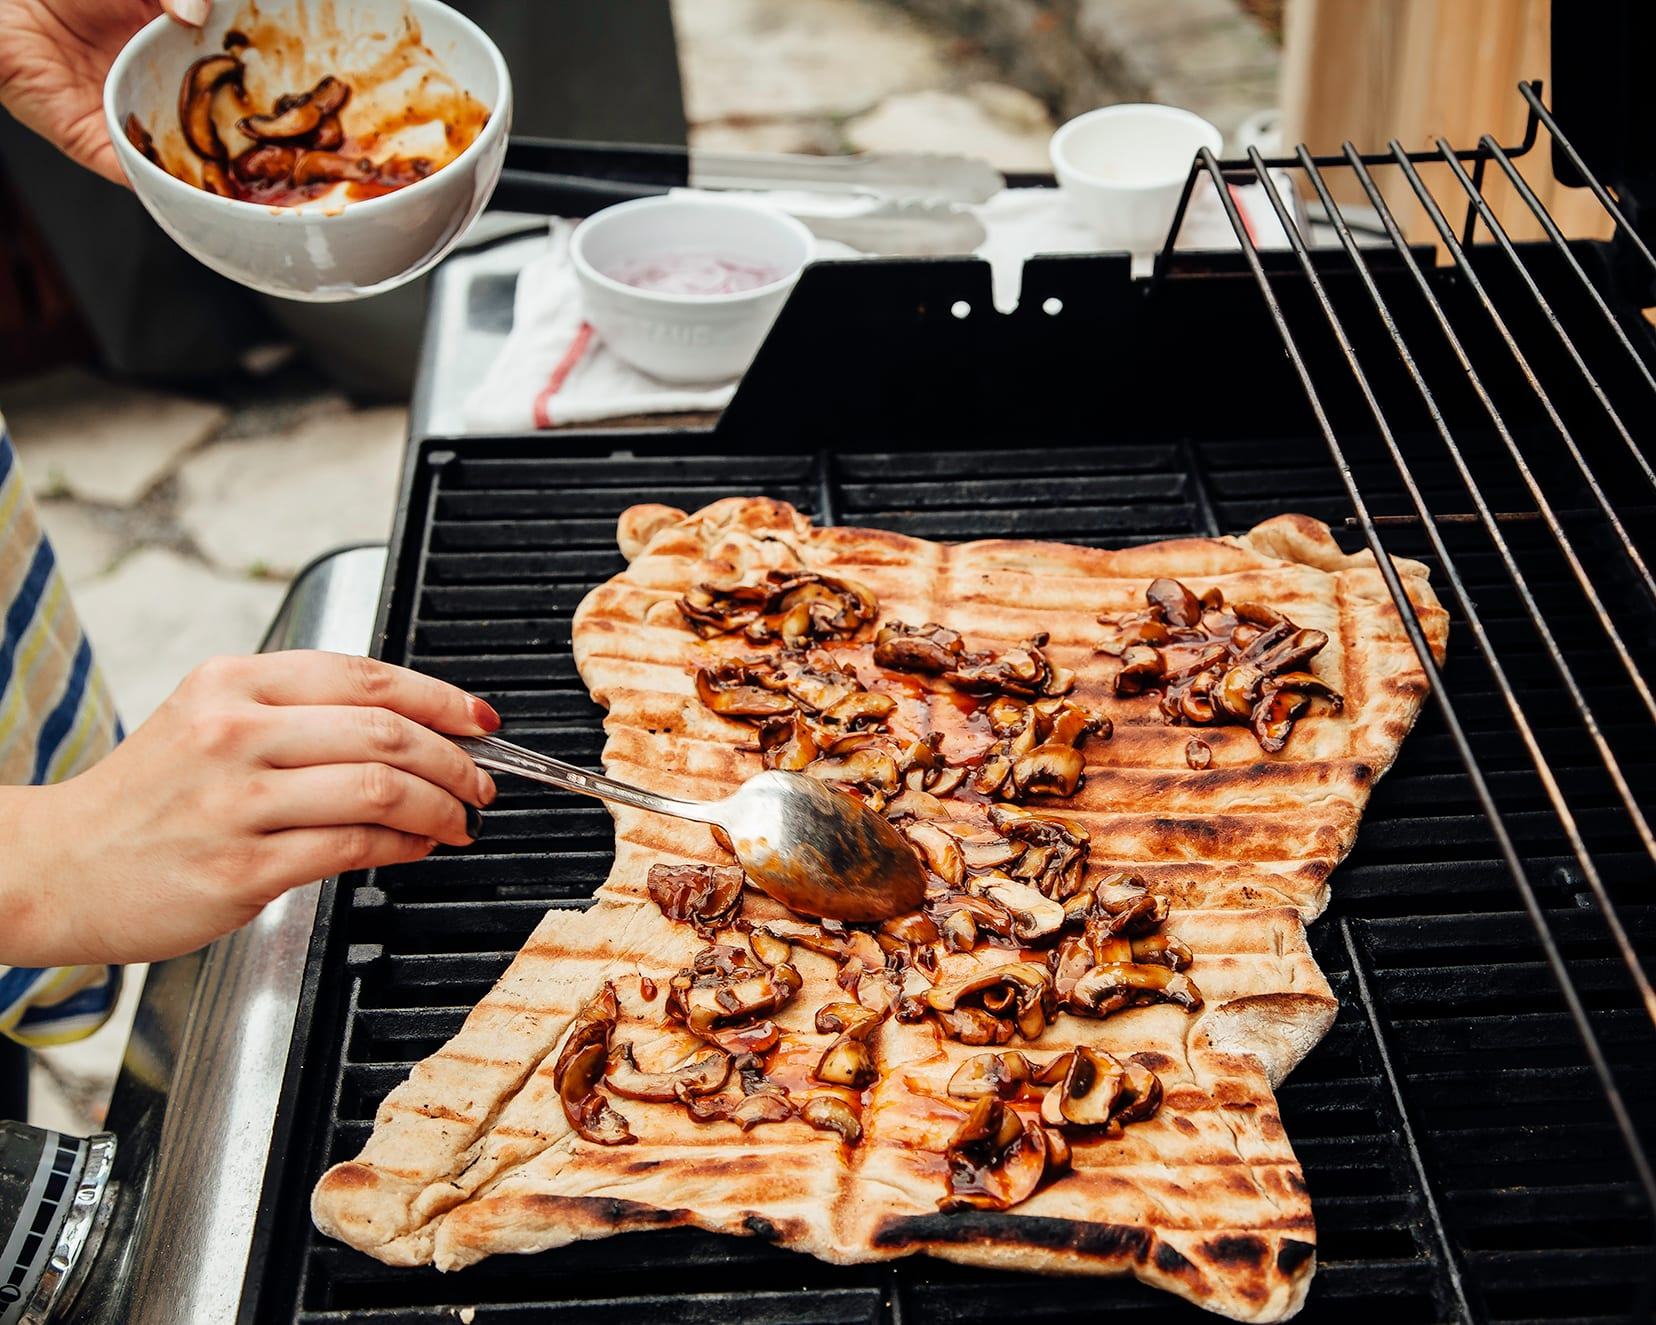 The cook's hand is spooning BBQ mushrooms onto the grilled flatbread as it cooks on the grill.